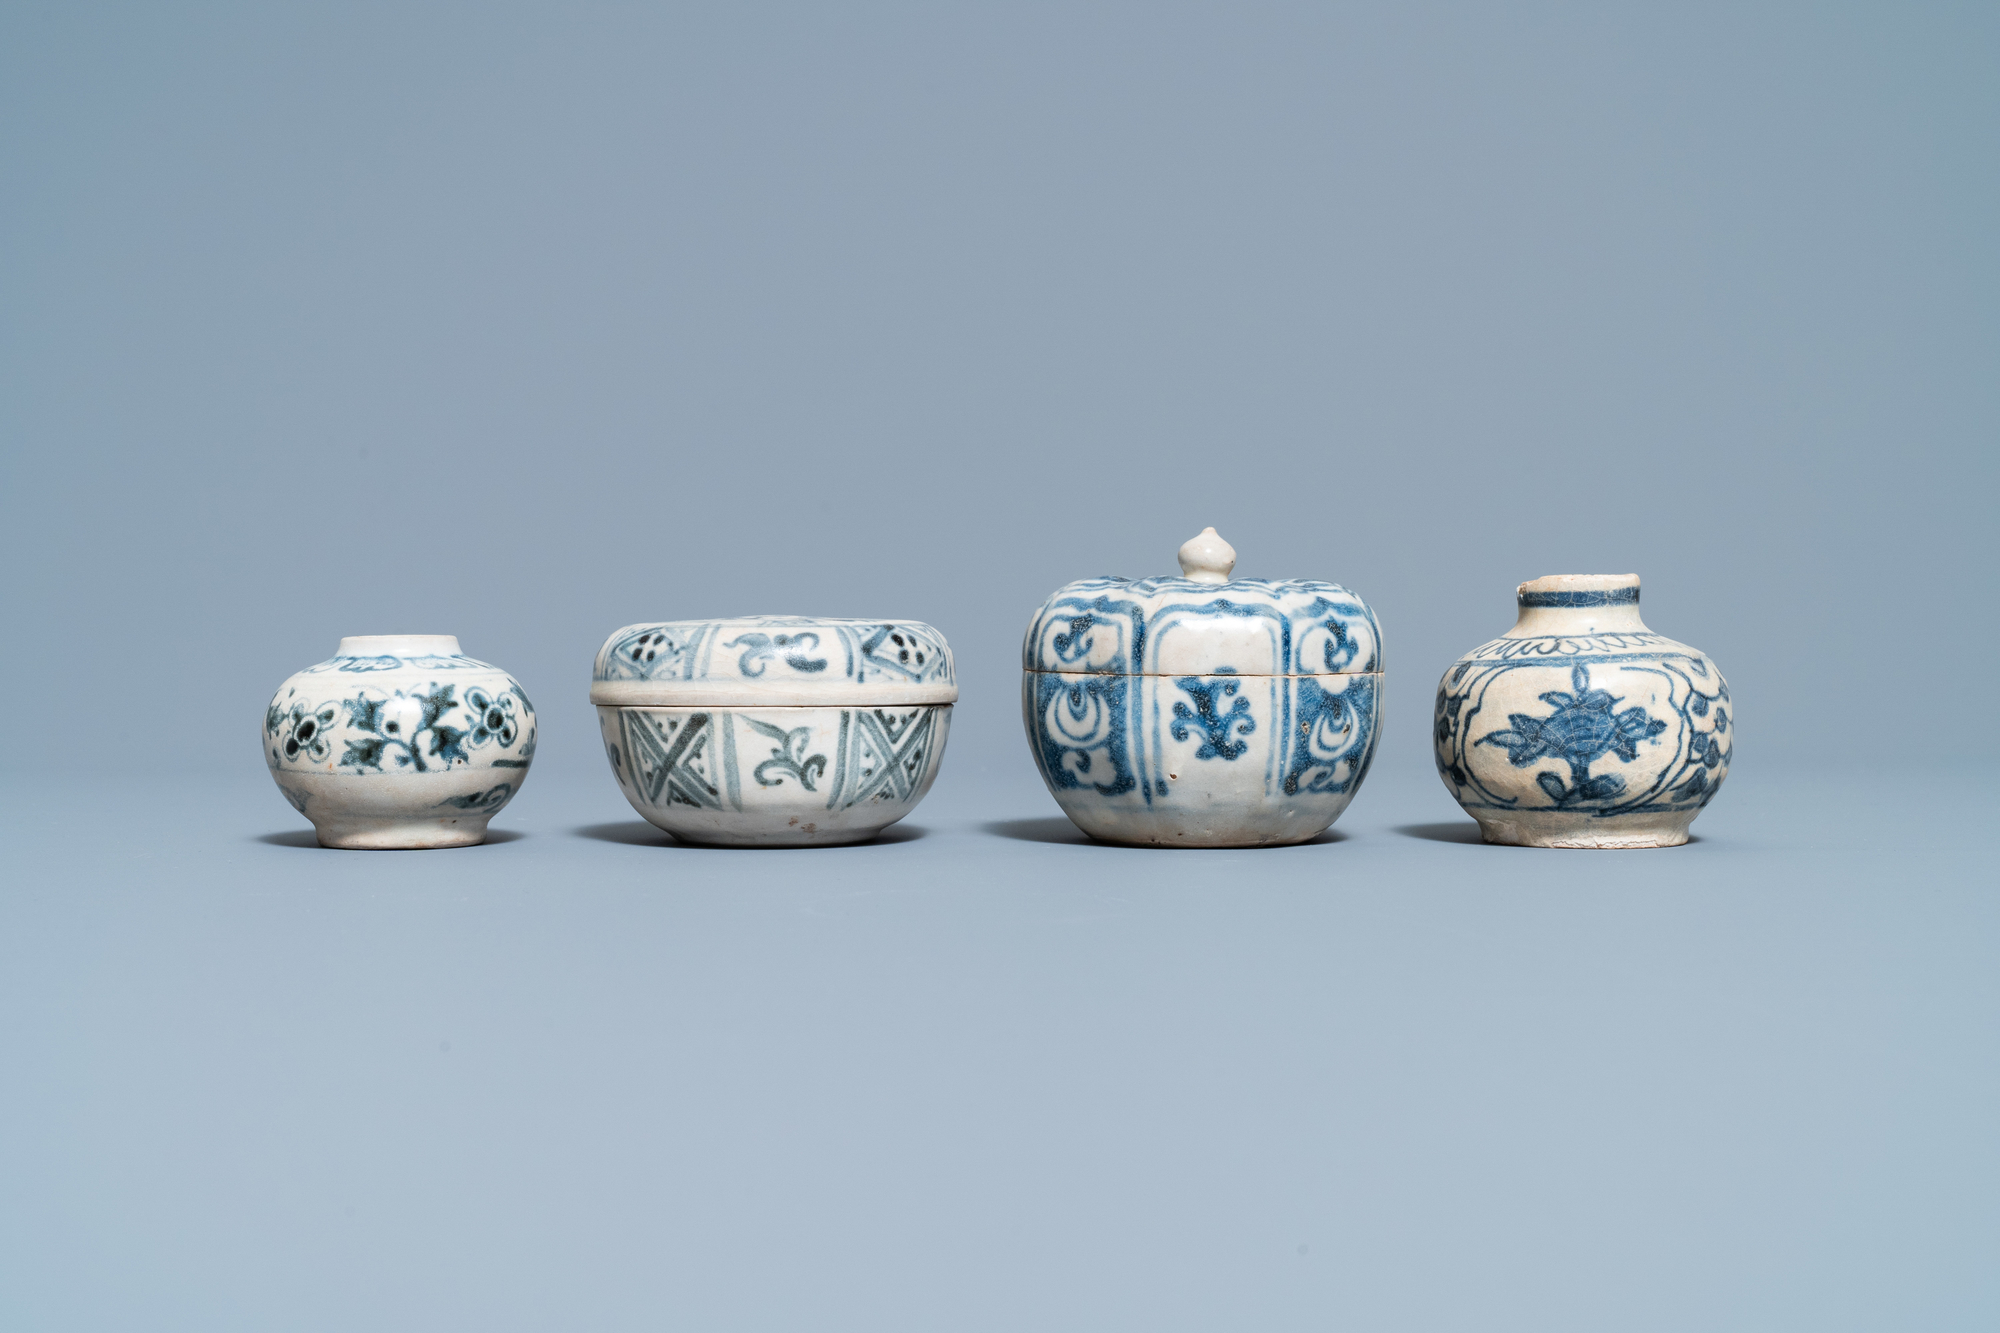 Four blue and white Vietnamese or Annamese ceramics and a Chinese jarlet, 15/16th C. - Image 9 of 12